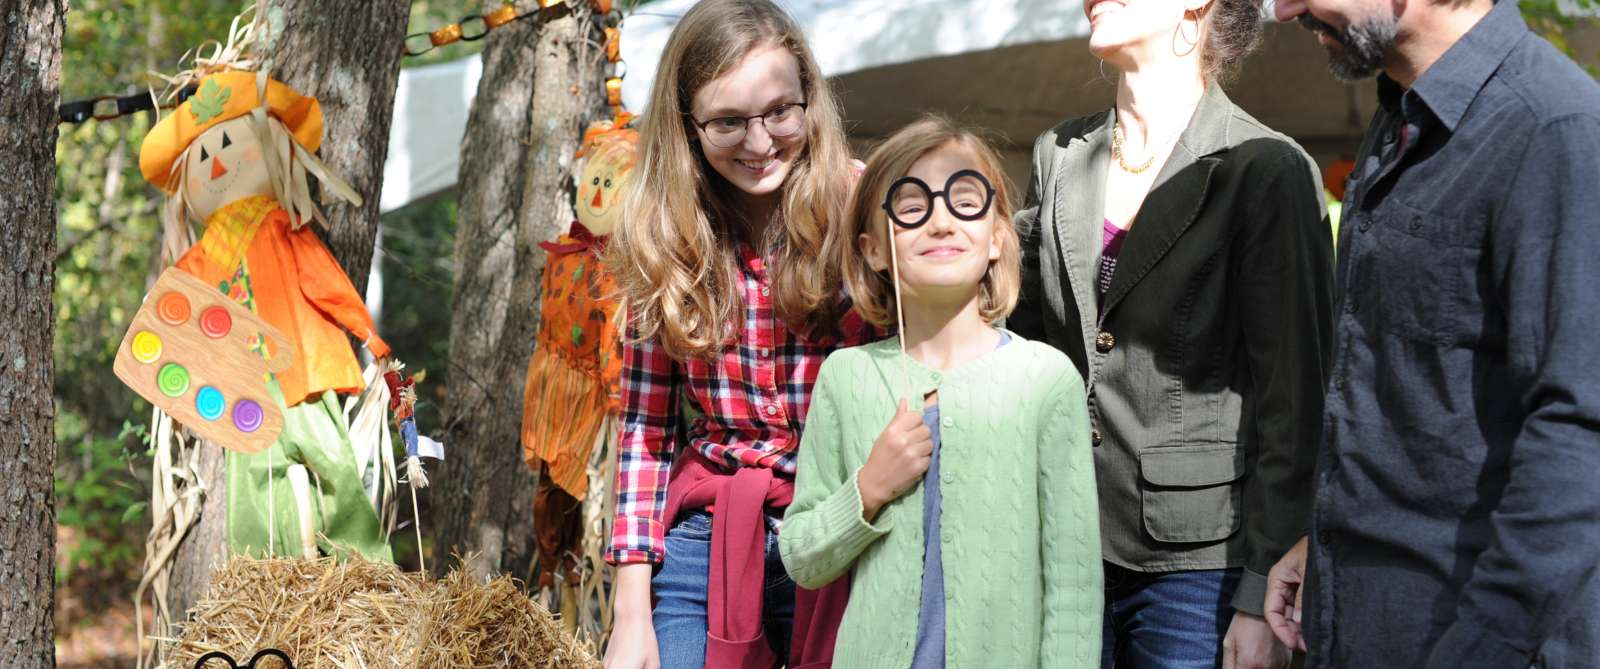 Fall events in Chesapeake are perfect places for family fun.